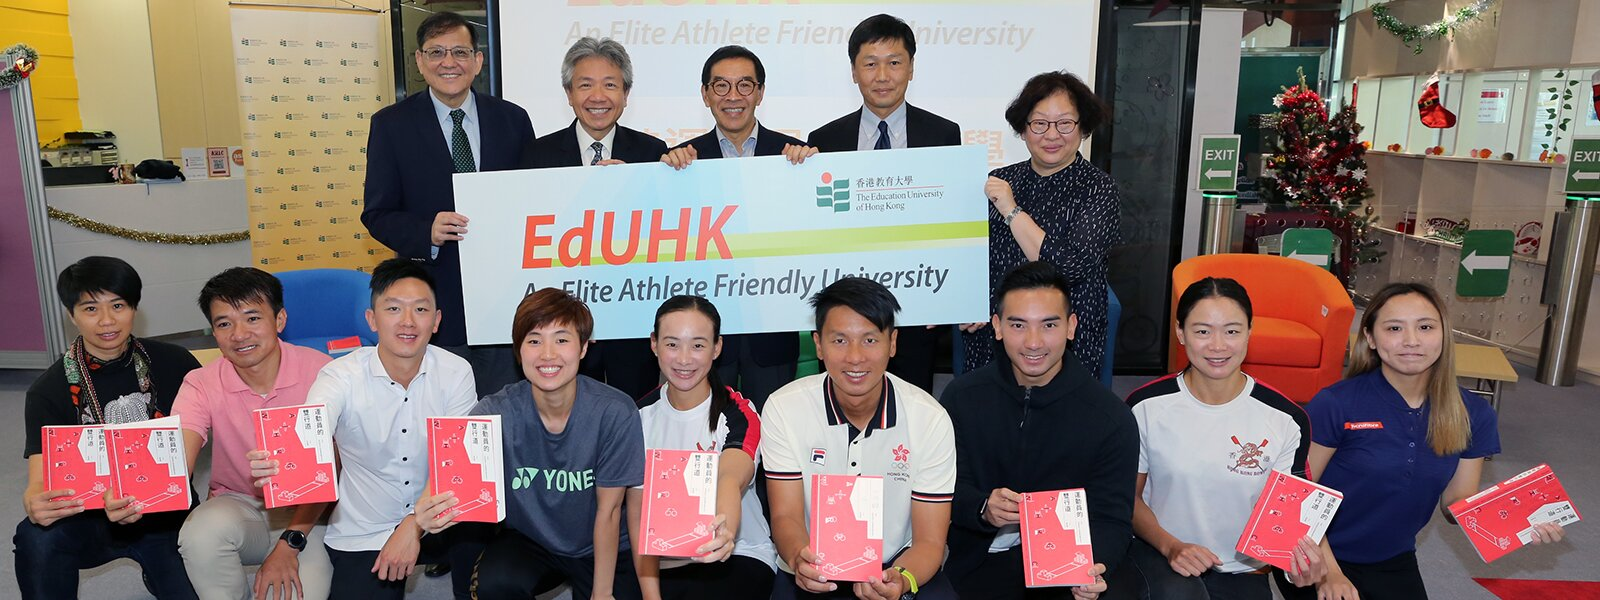 Book Launch of Dual Career Pathway of Elite Athletes